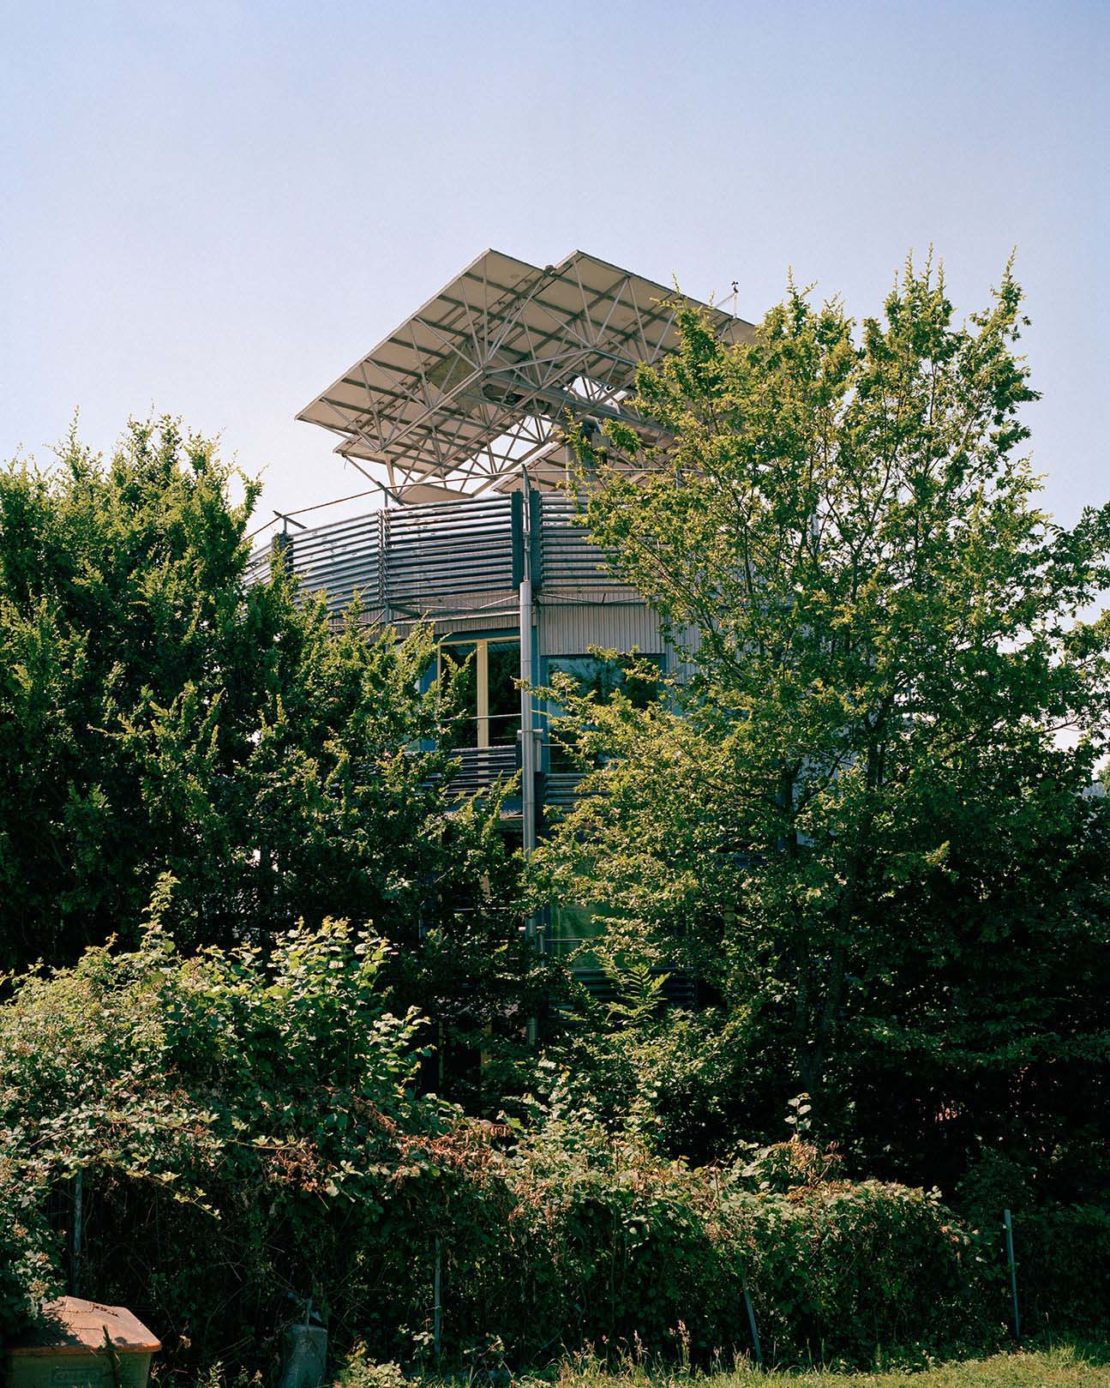 An experimental house, with roof solar panels and a spinning mechanism to follow sunlight, built by resident Rolf Disch in 1994